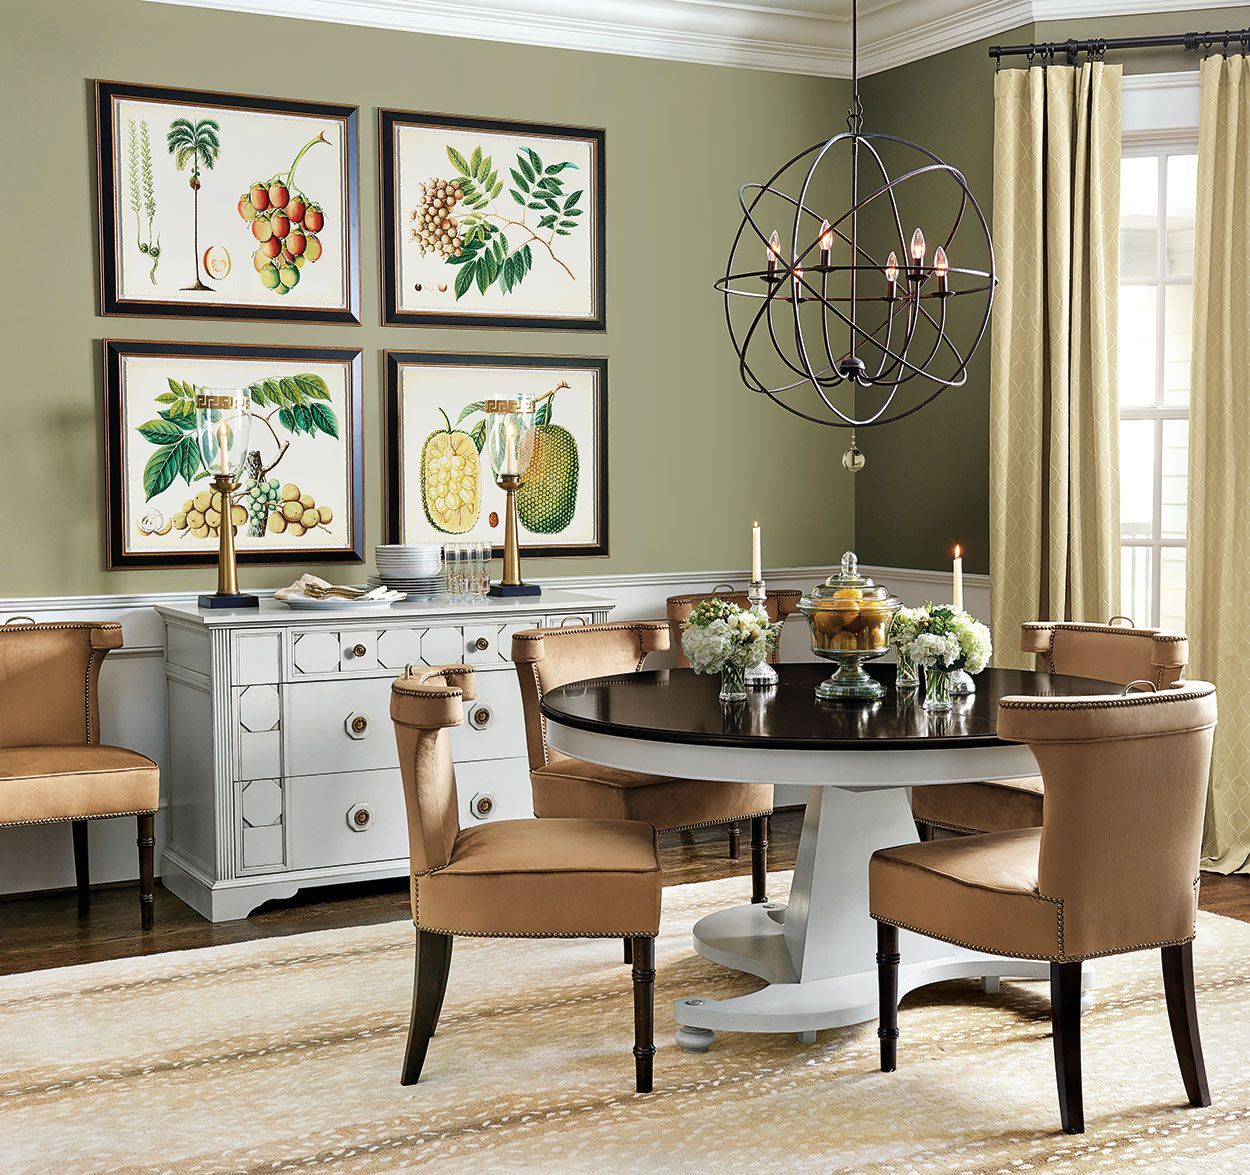 Earth Tones Like An Olive Green Wall Color And Velvet Chairs In Rich Ochre Make This Dining Room De In 2020 Green Dining Room Green Walls Living Room Living Room Green